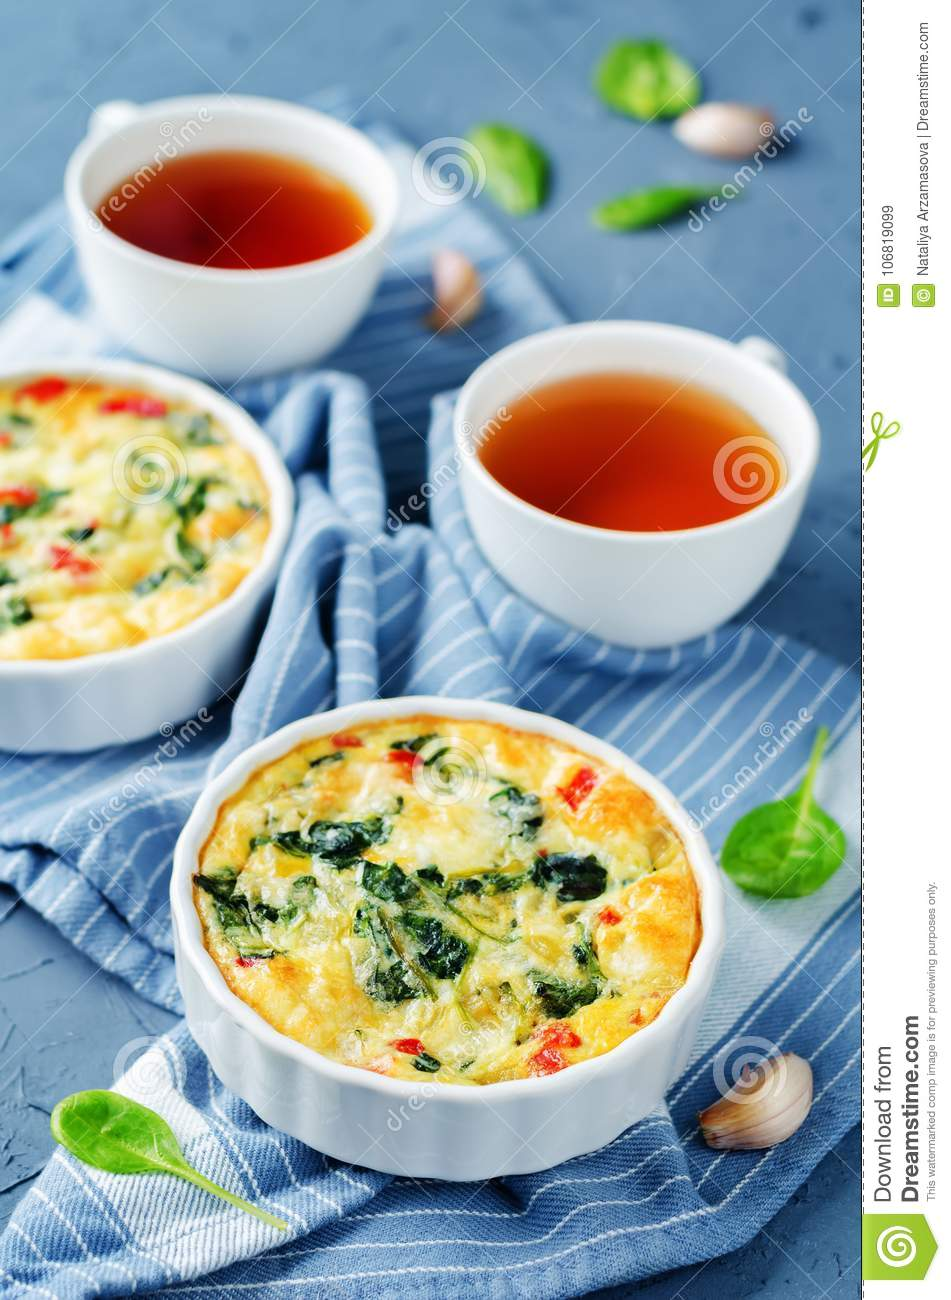 Discussion on this topic: Egg Spinach Bell Pepper Bowls, egg-spinach-bell-pepper-bowls/